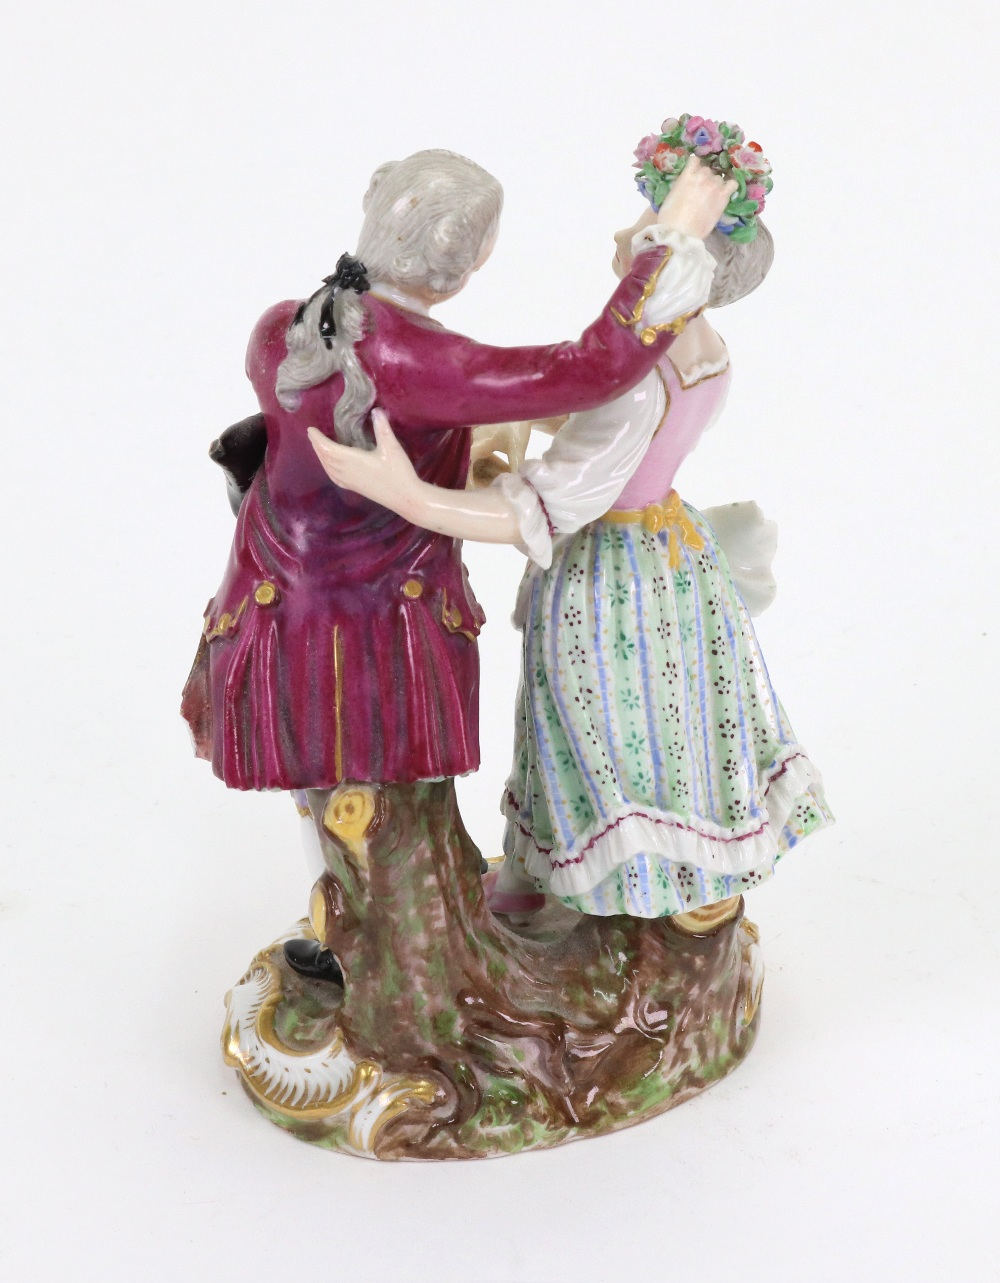 Lot 41 - A Meissen porcelain group modelled as a young lady and gentleman dancing, late 19th century style,